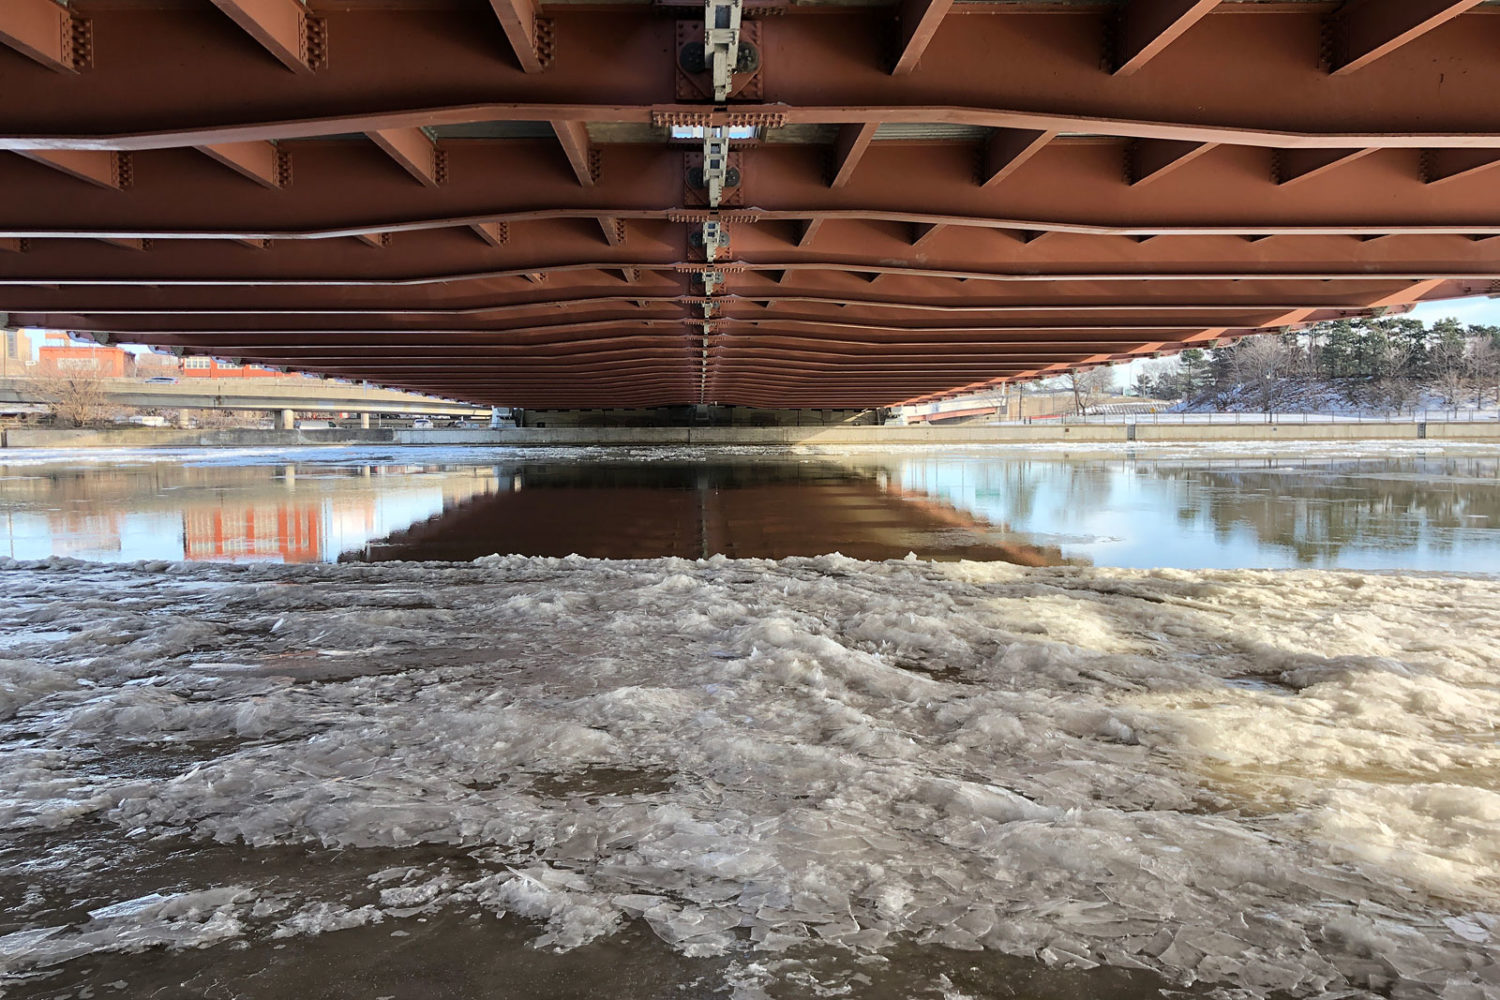 Underside of the Susan B. Anthony Frederick Douglas Bridge in Rochester, New York